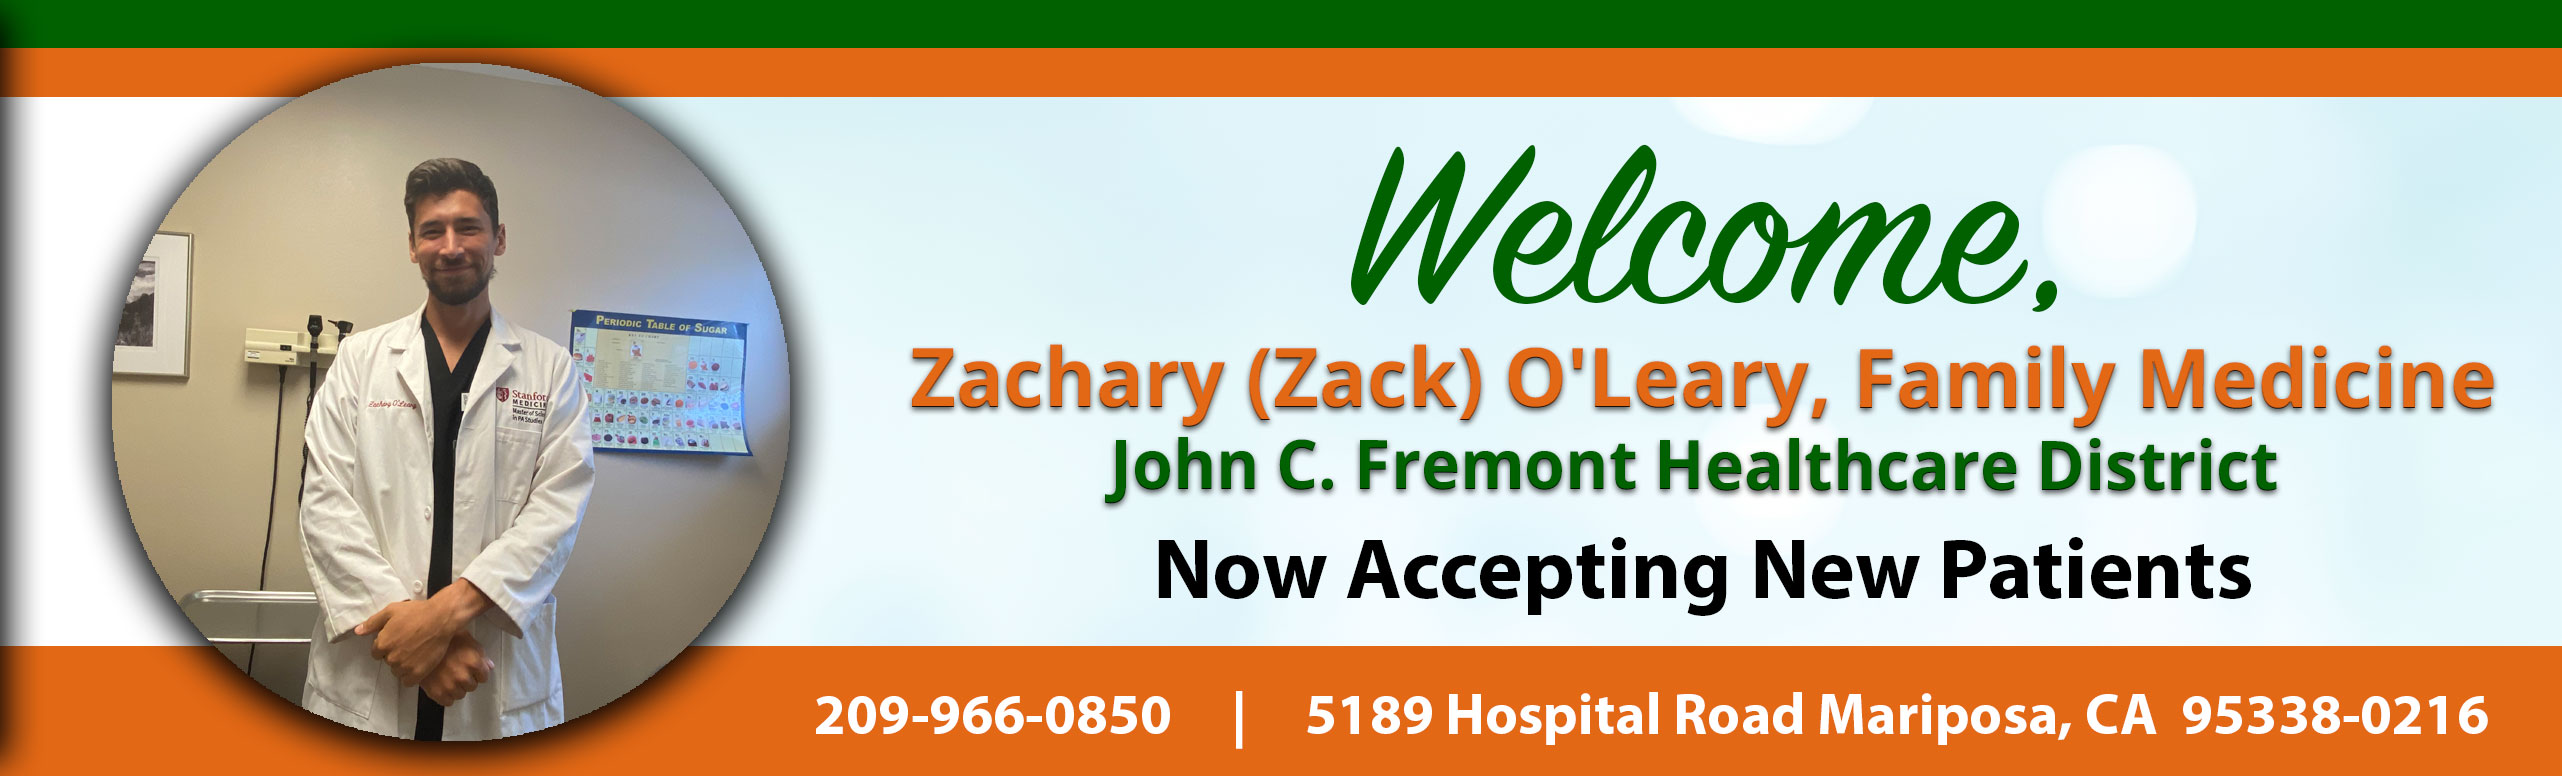 Banner Picture of Zachary (Zack) O'Leary, Family Medicine  Banner says: Welcome, Zachary (Zac) O'Leary, Family Medicine John C. Fremont Healthcare District Now Accepting New Patients 209-966-0850    5189 Hospital Road Mariposa, CA